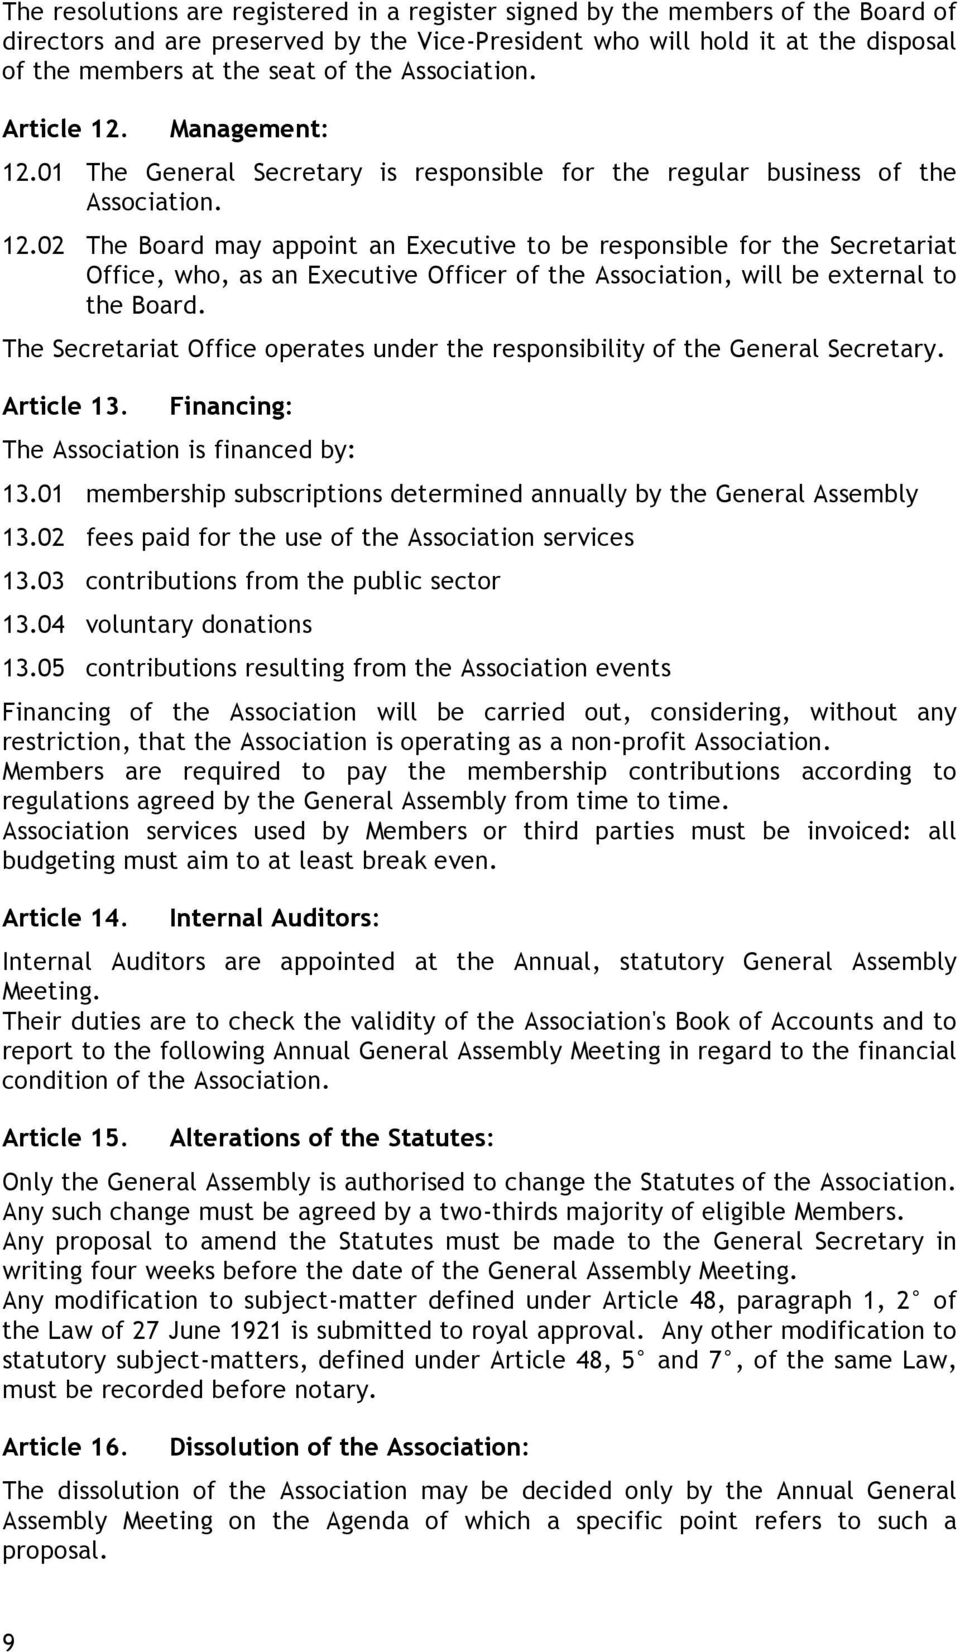 The Secretariat Office operates under the responsibility of the General Secretary. Article 13. Financing: The Association is financed by: 13.